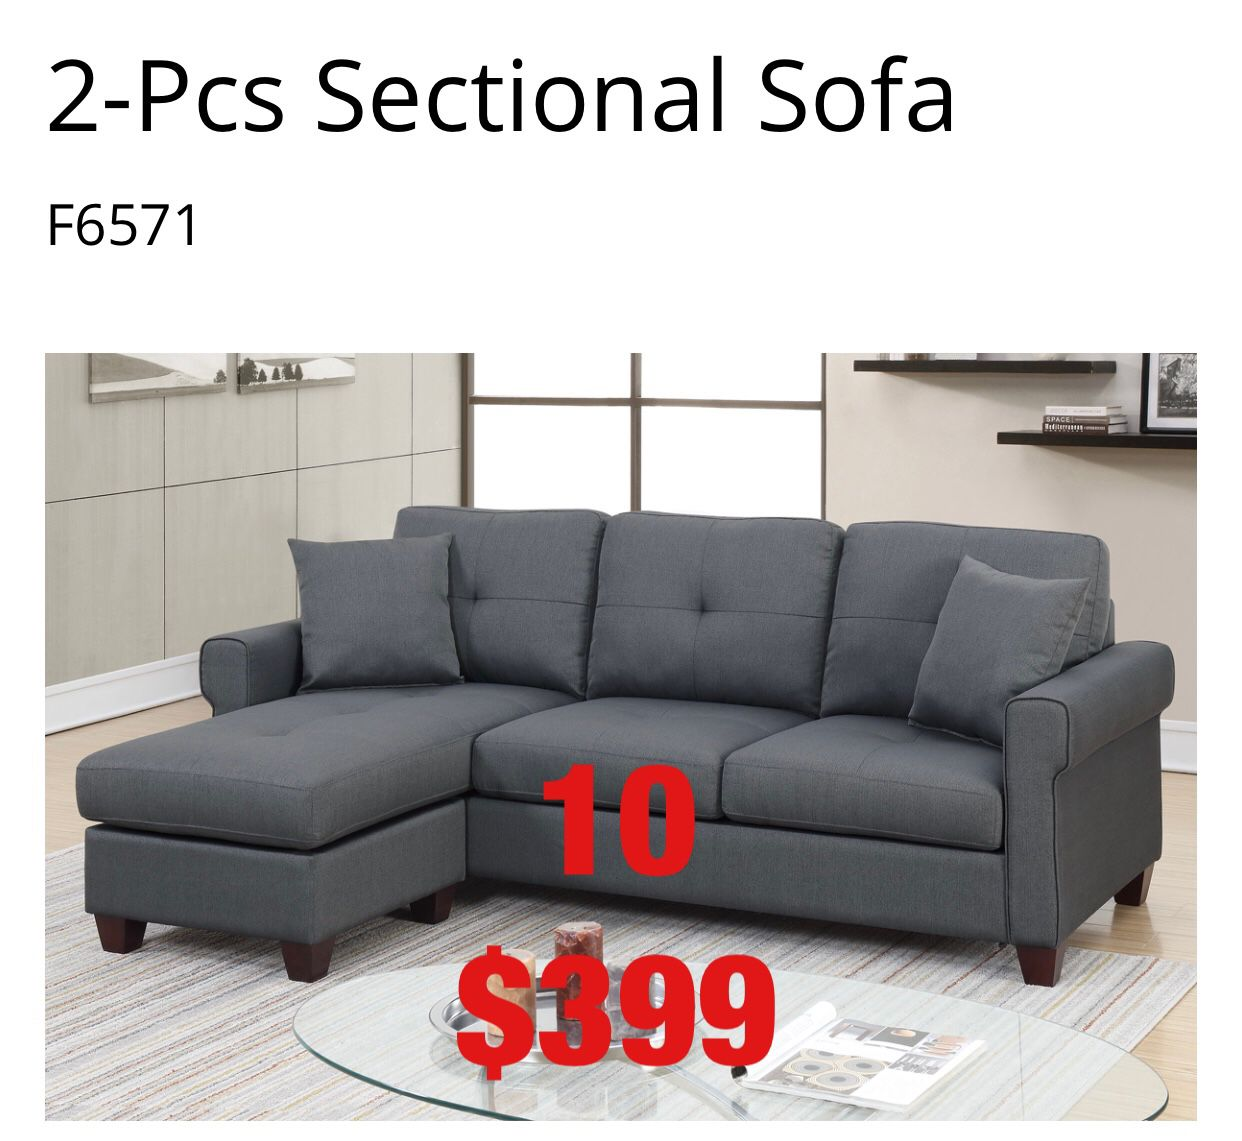 Furniture Sofa. Assembly required. Assembly not included. Free delivery.